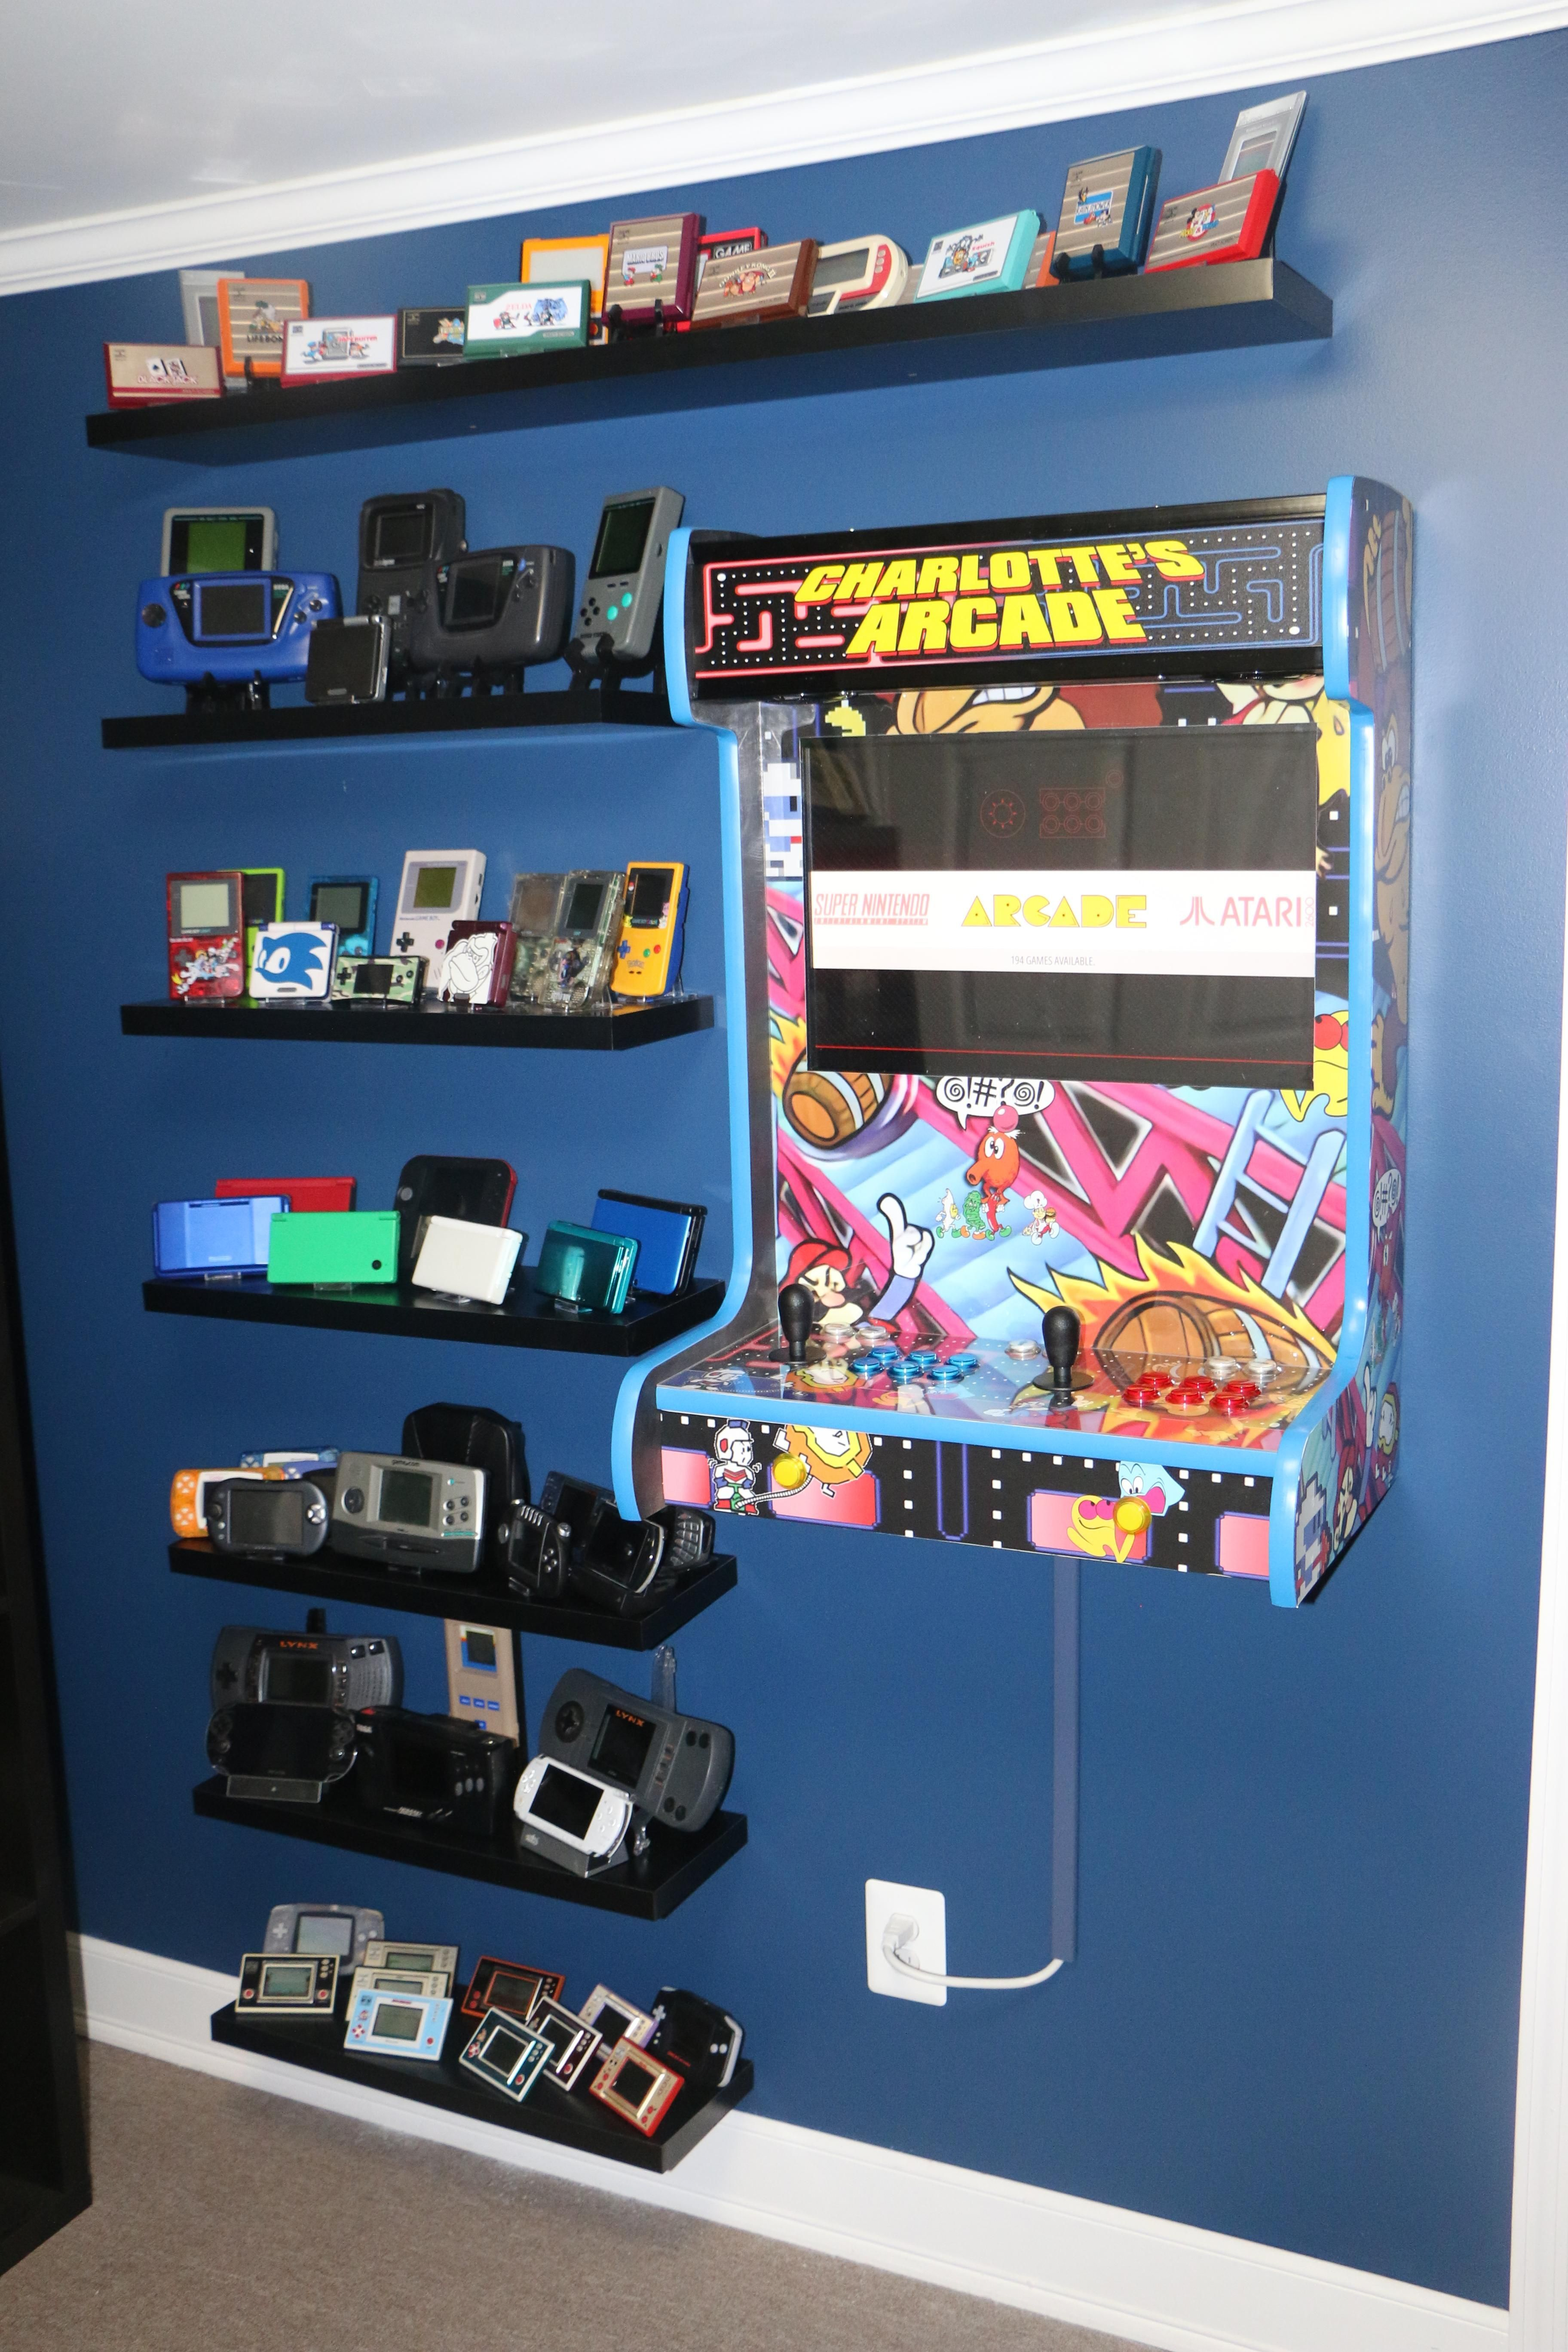 Wardrobe hammer power drill shelving braces wood screws screwdriver tv wall mount cord covers surge protectors spotlights square table light base coat of paint two darker shades of paint. Retro Gaming Wall - Handheld Collection Shelves and wall ...